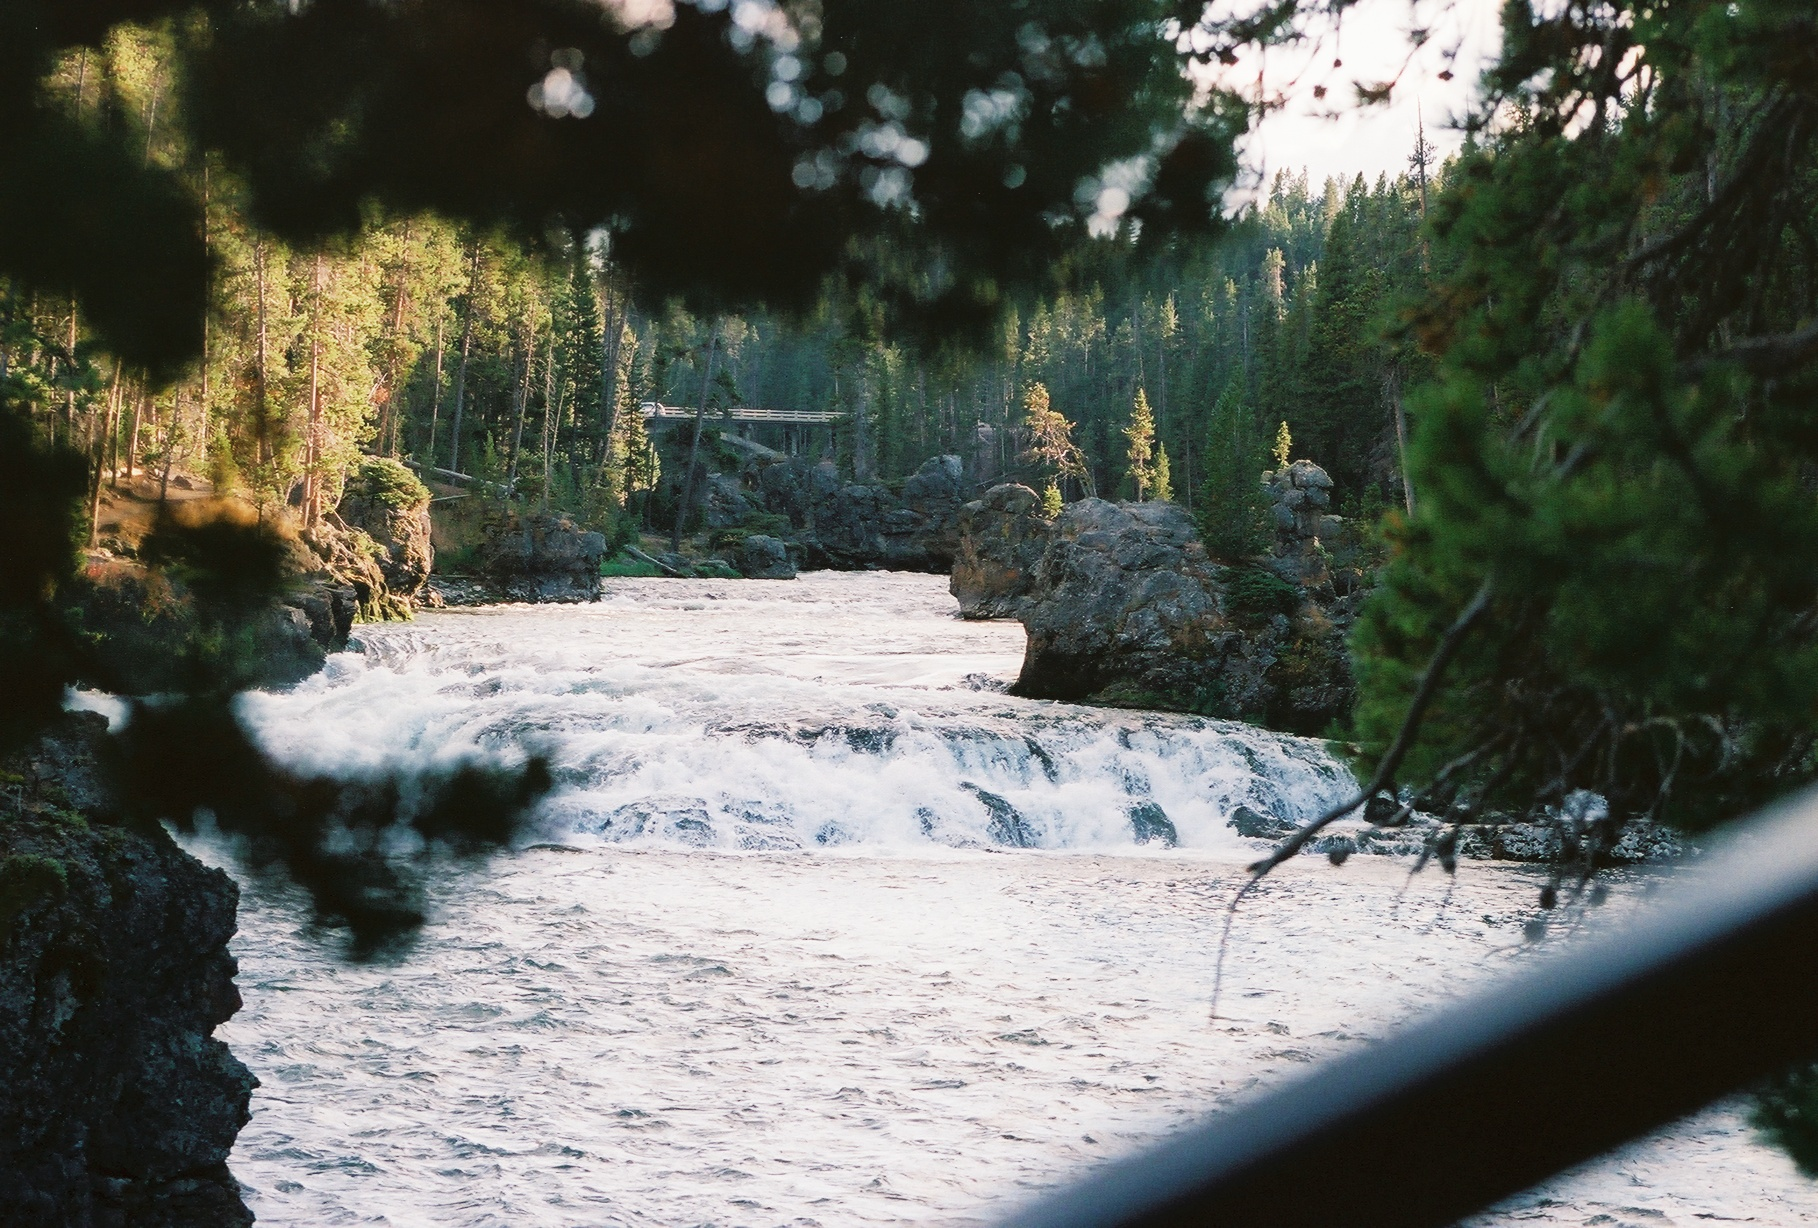 Lewis Falls | The Ultimate Travel Guide for Yellowstone National Park by Travel + Lifestyle blogger Bri Sul